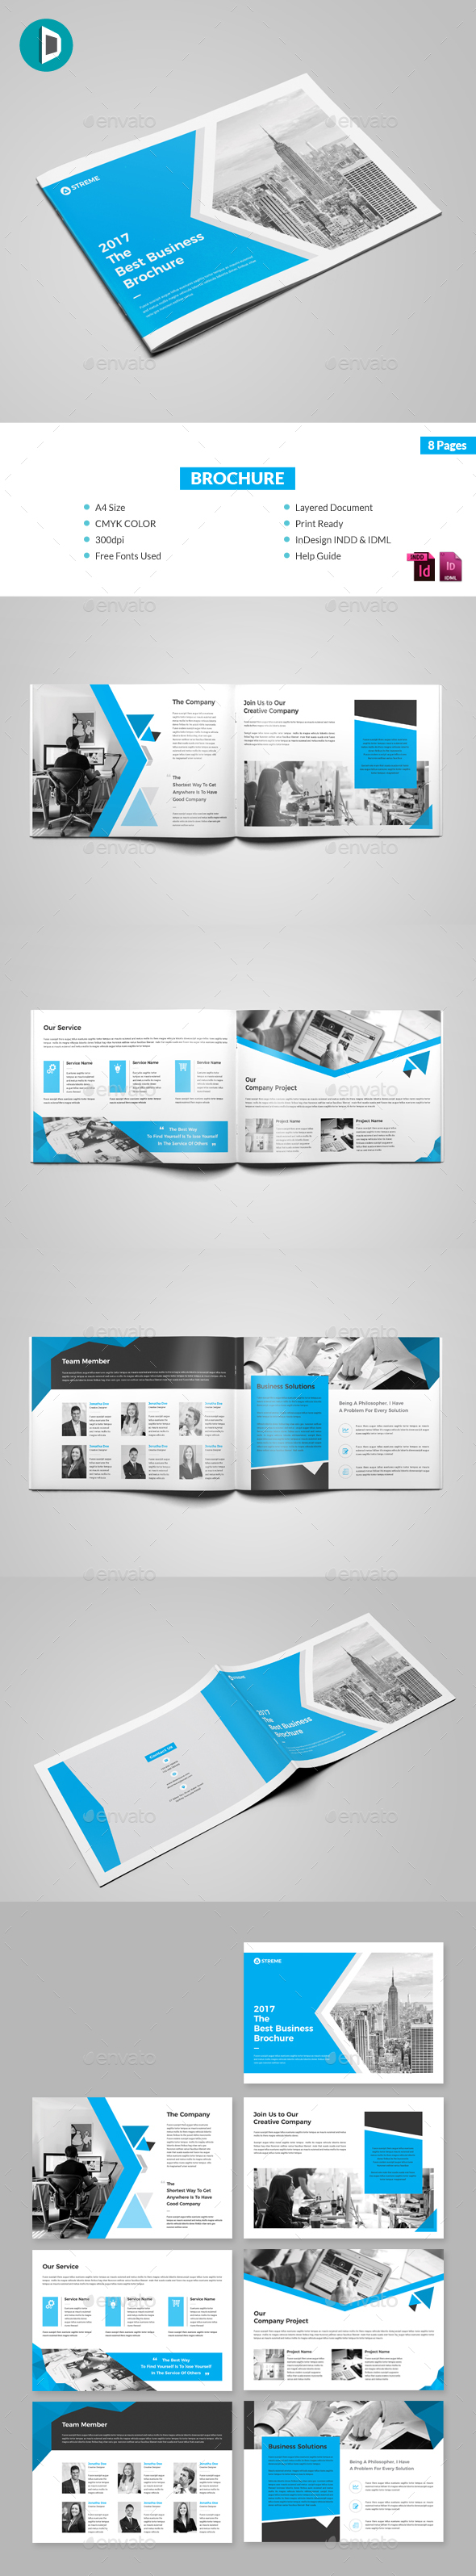 Landscape Brochure - Corporate Brochures